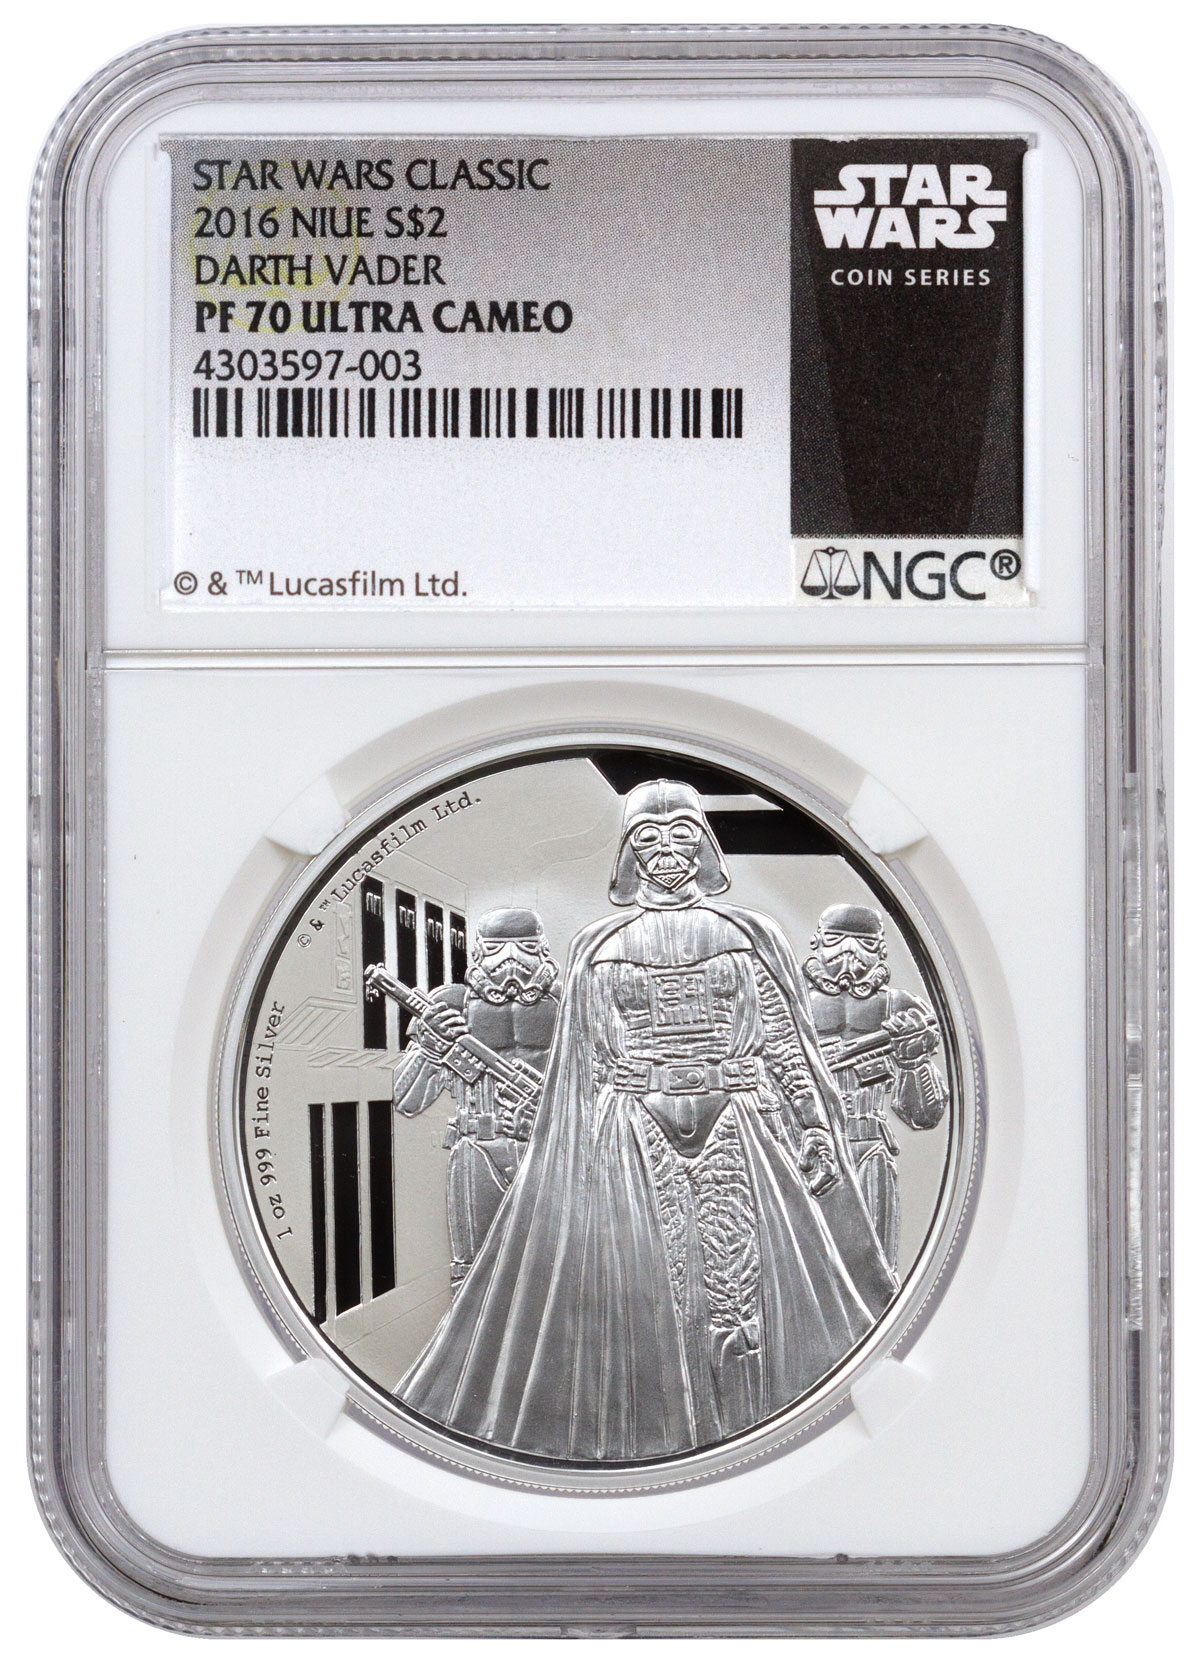 2016 Niue Star Wars Classic - Darth Vader 1 oz Silver Proof $2 NGC PF70 UC (Exclusive Star Wars Label)